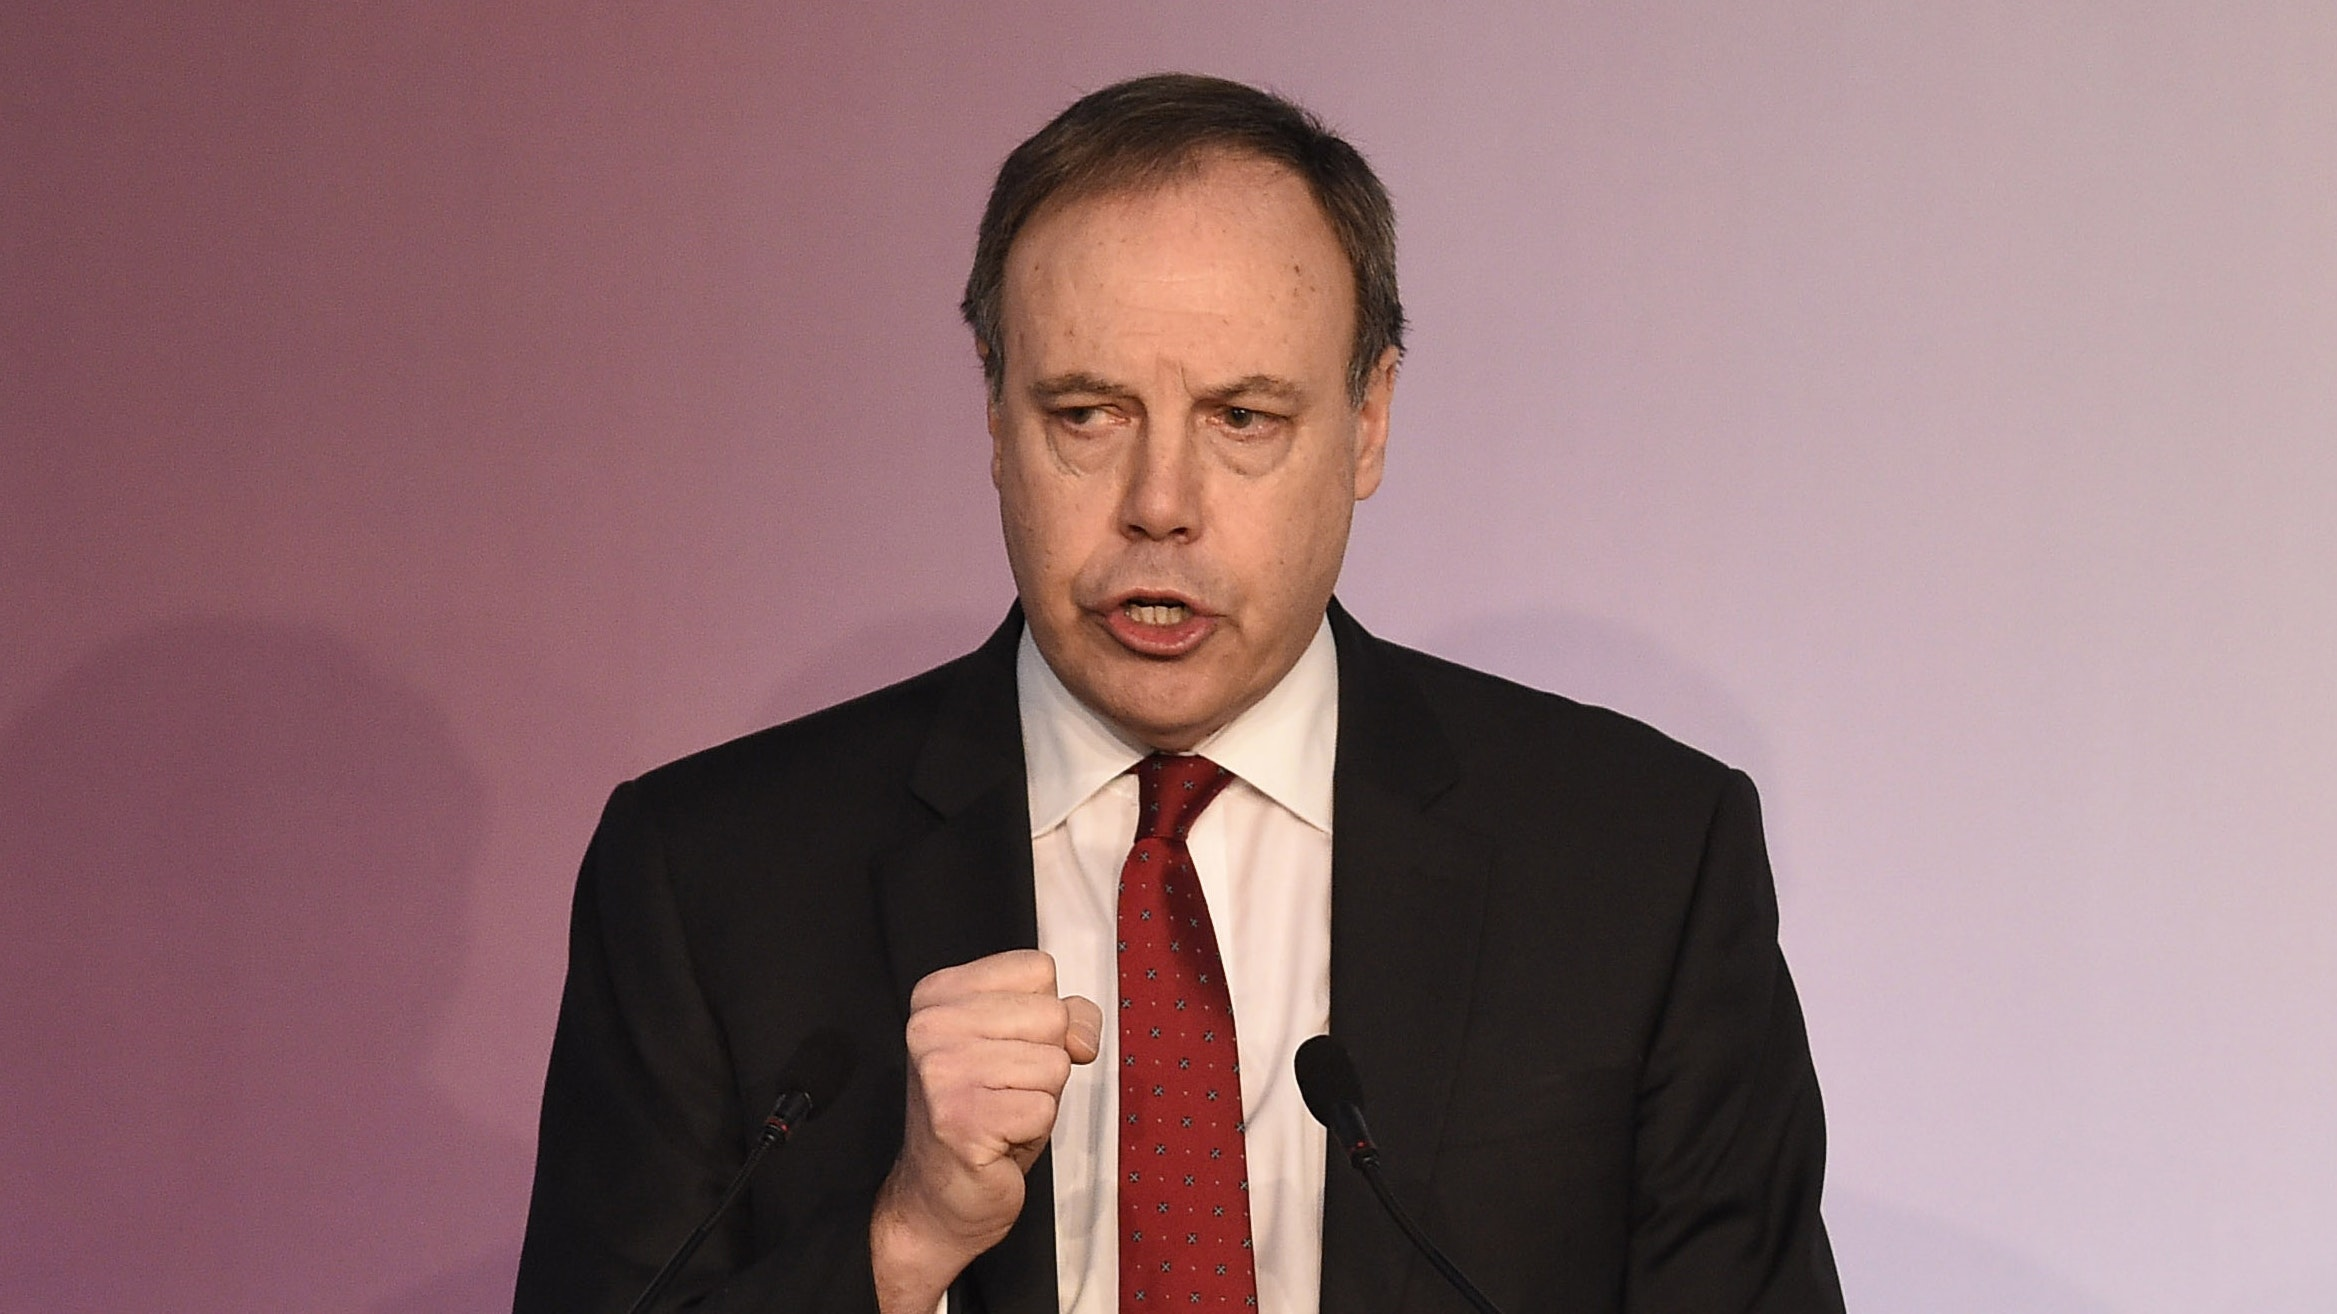 Nigel Dodds said there has been a 'constructive dialogue'